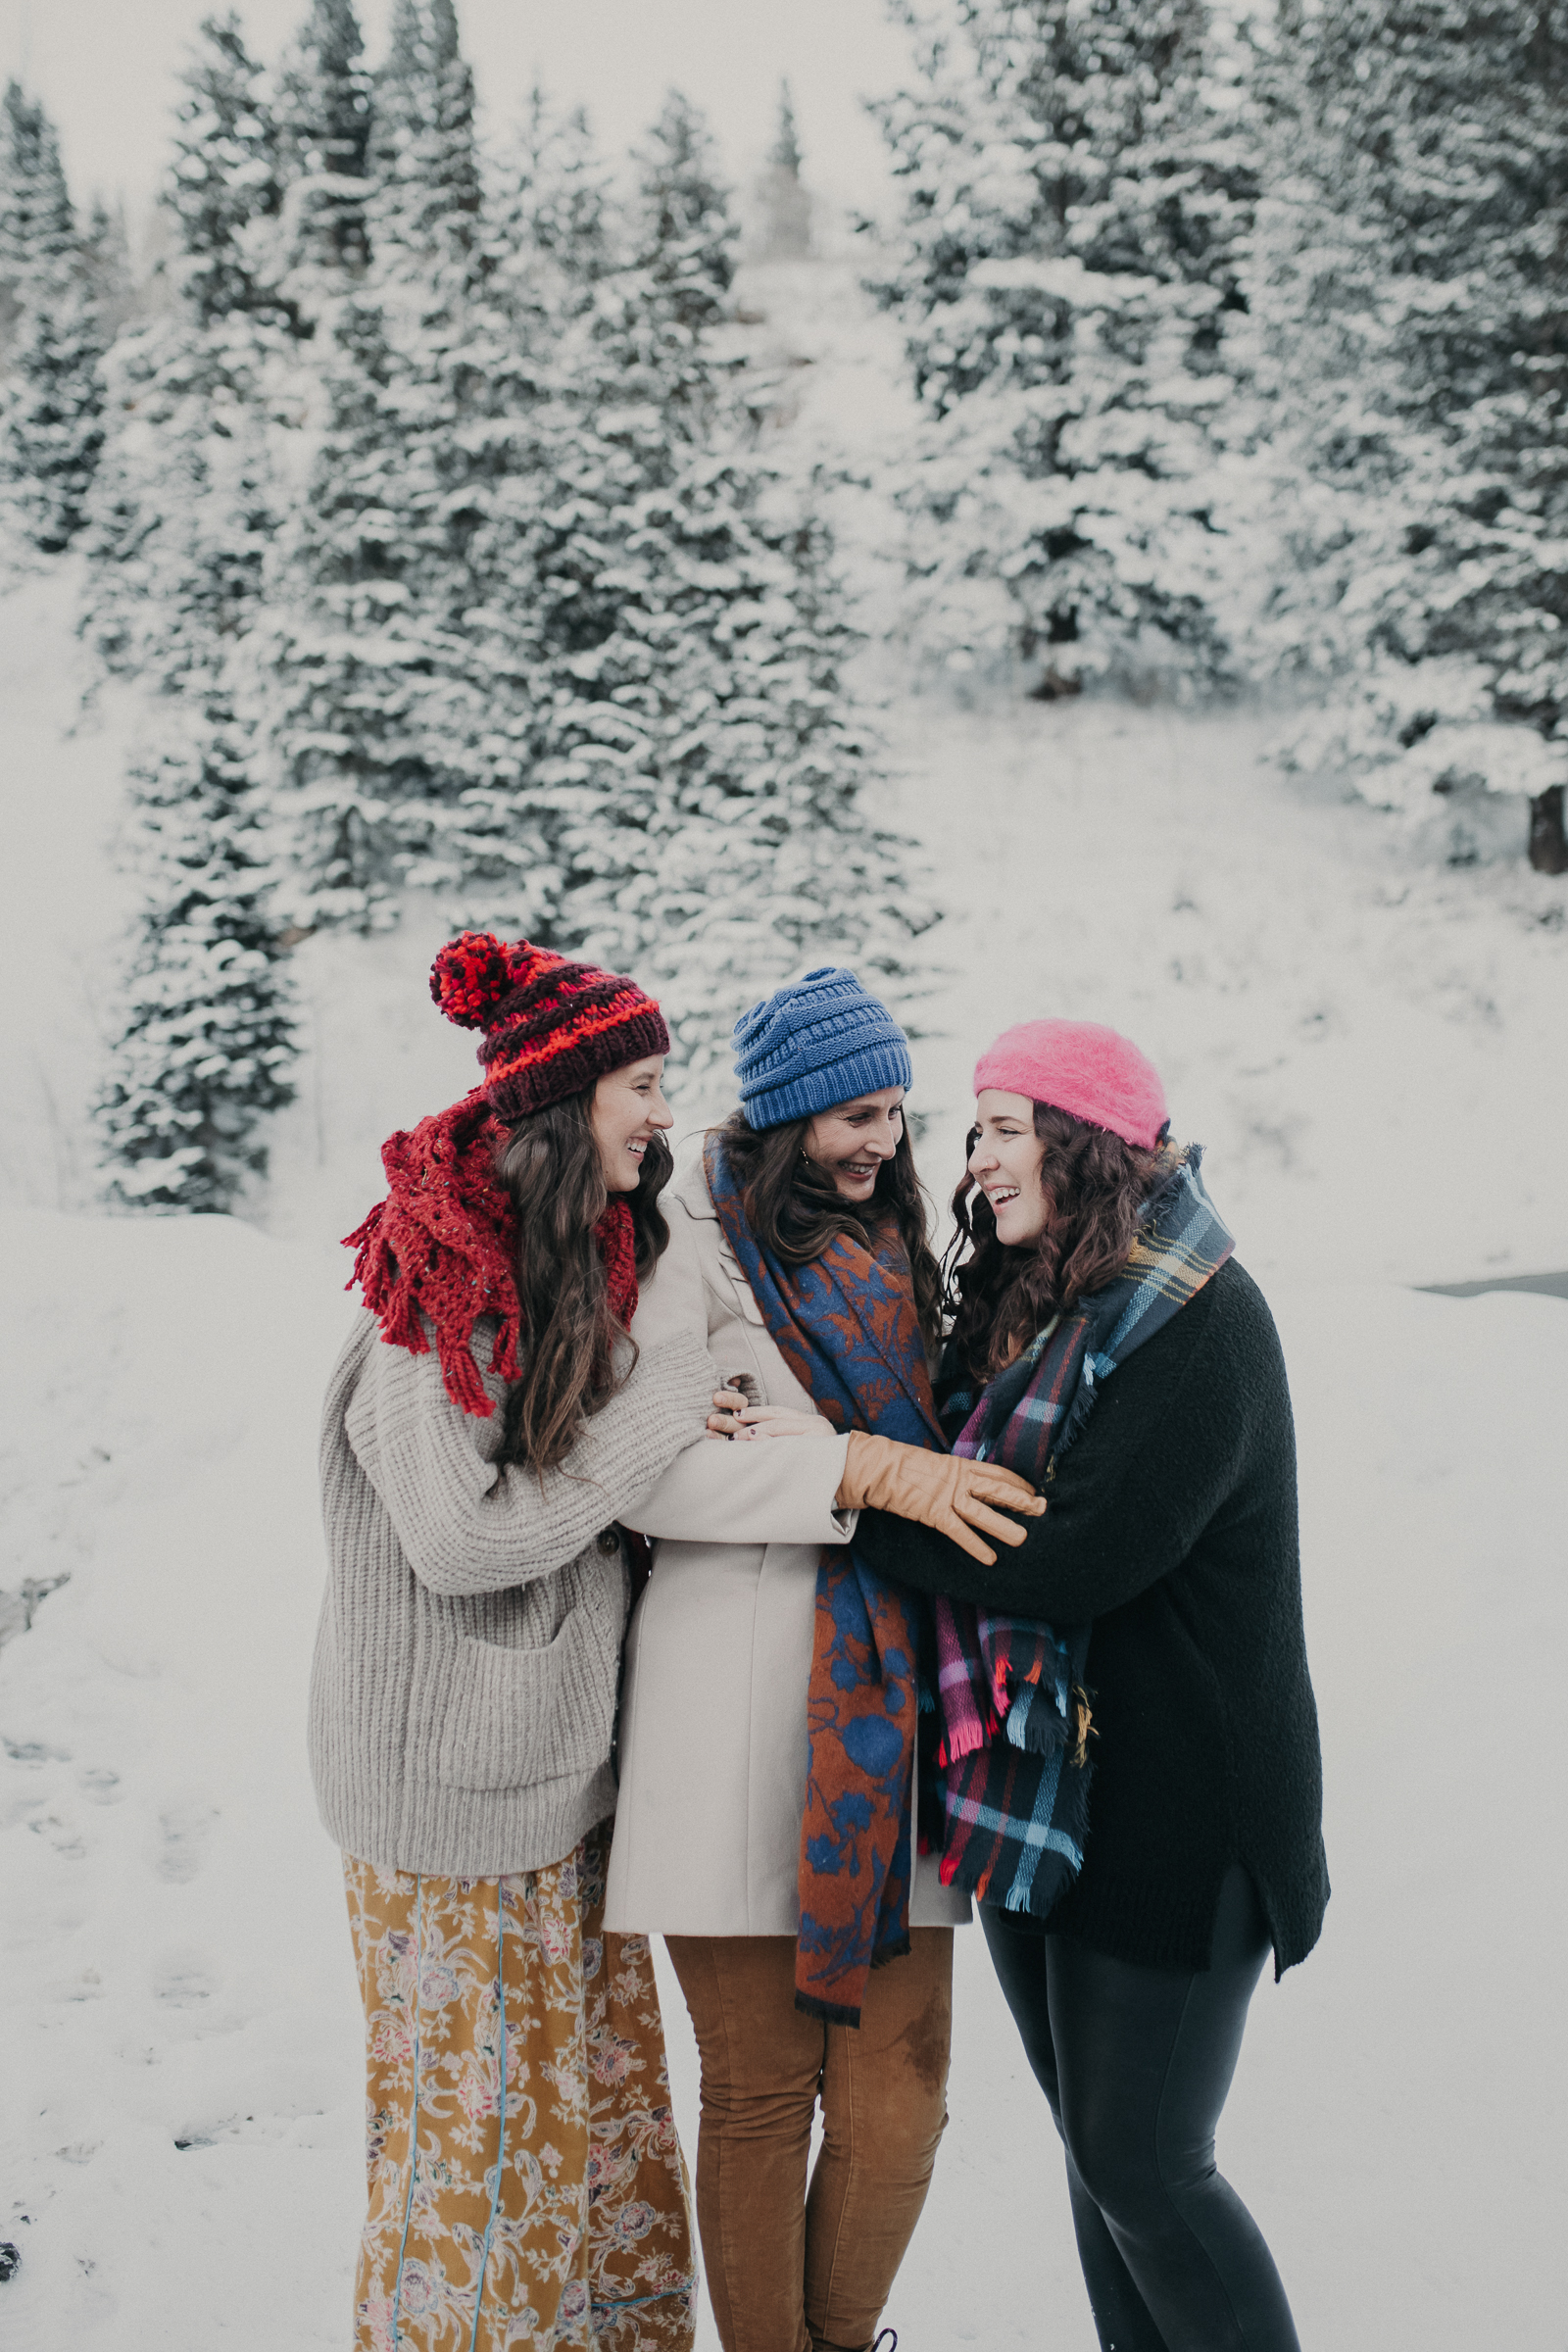 Sisters standing . together in snowy mountains